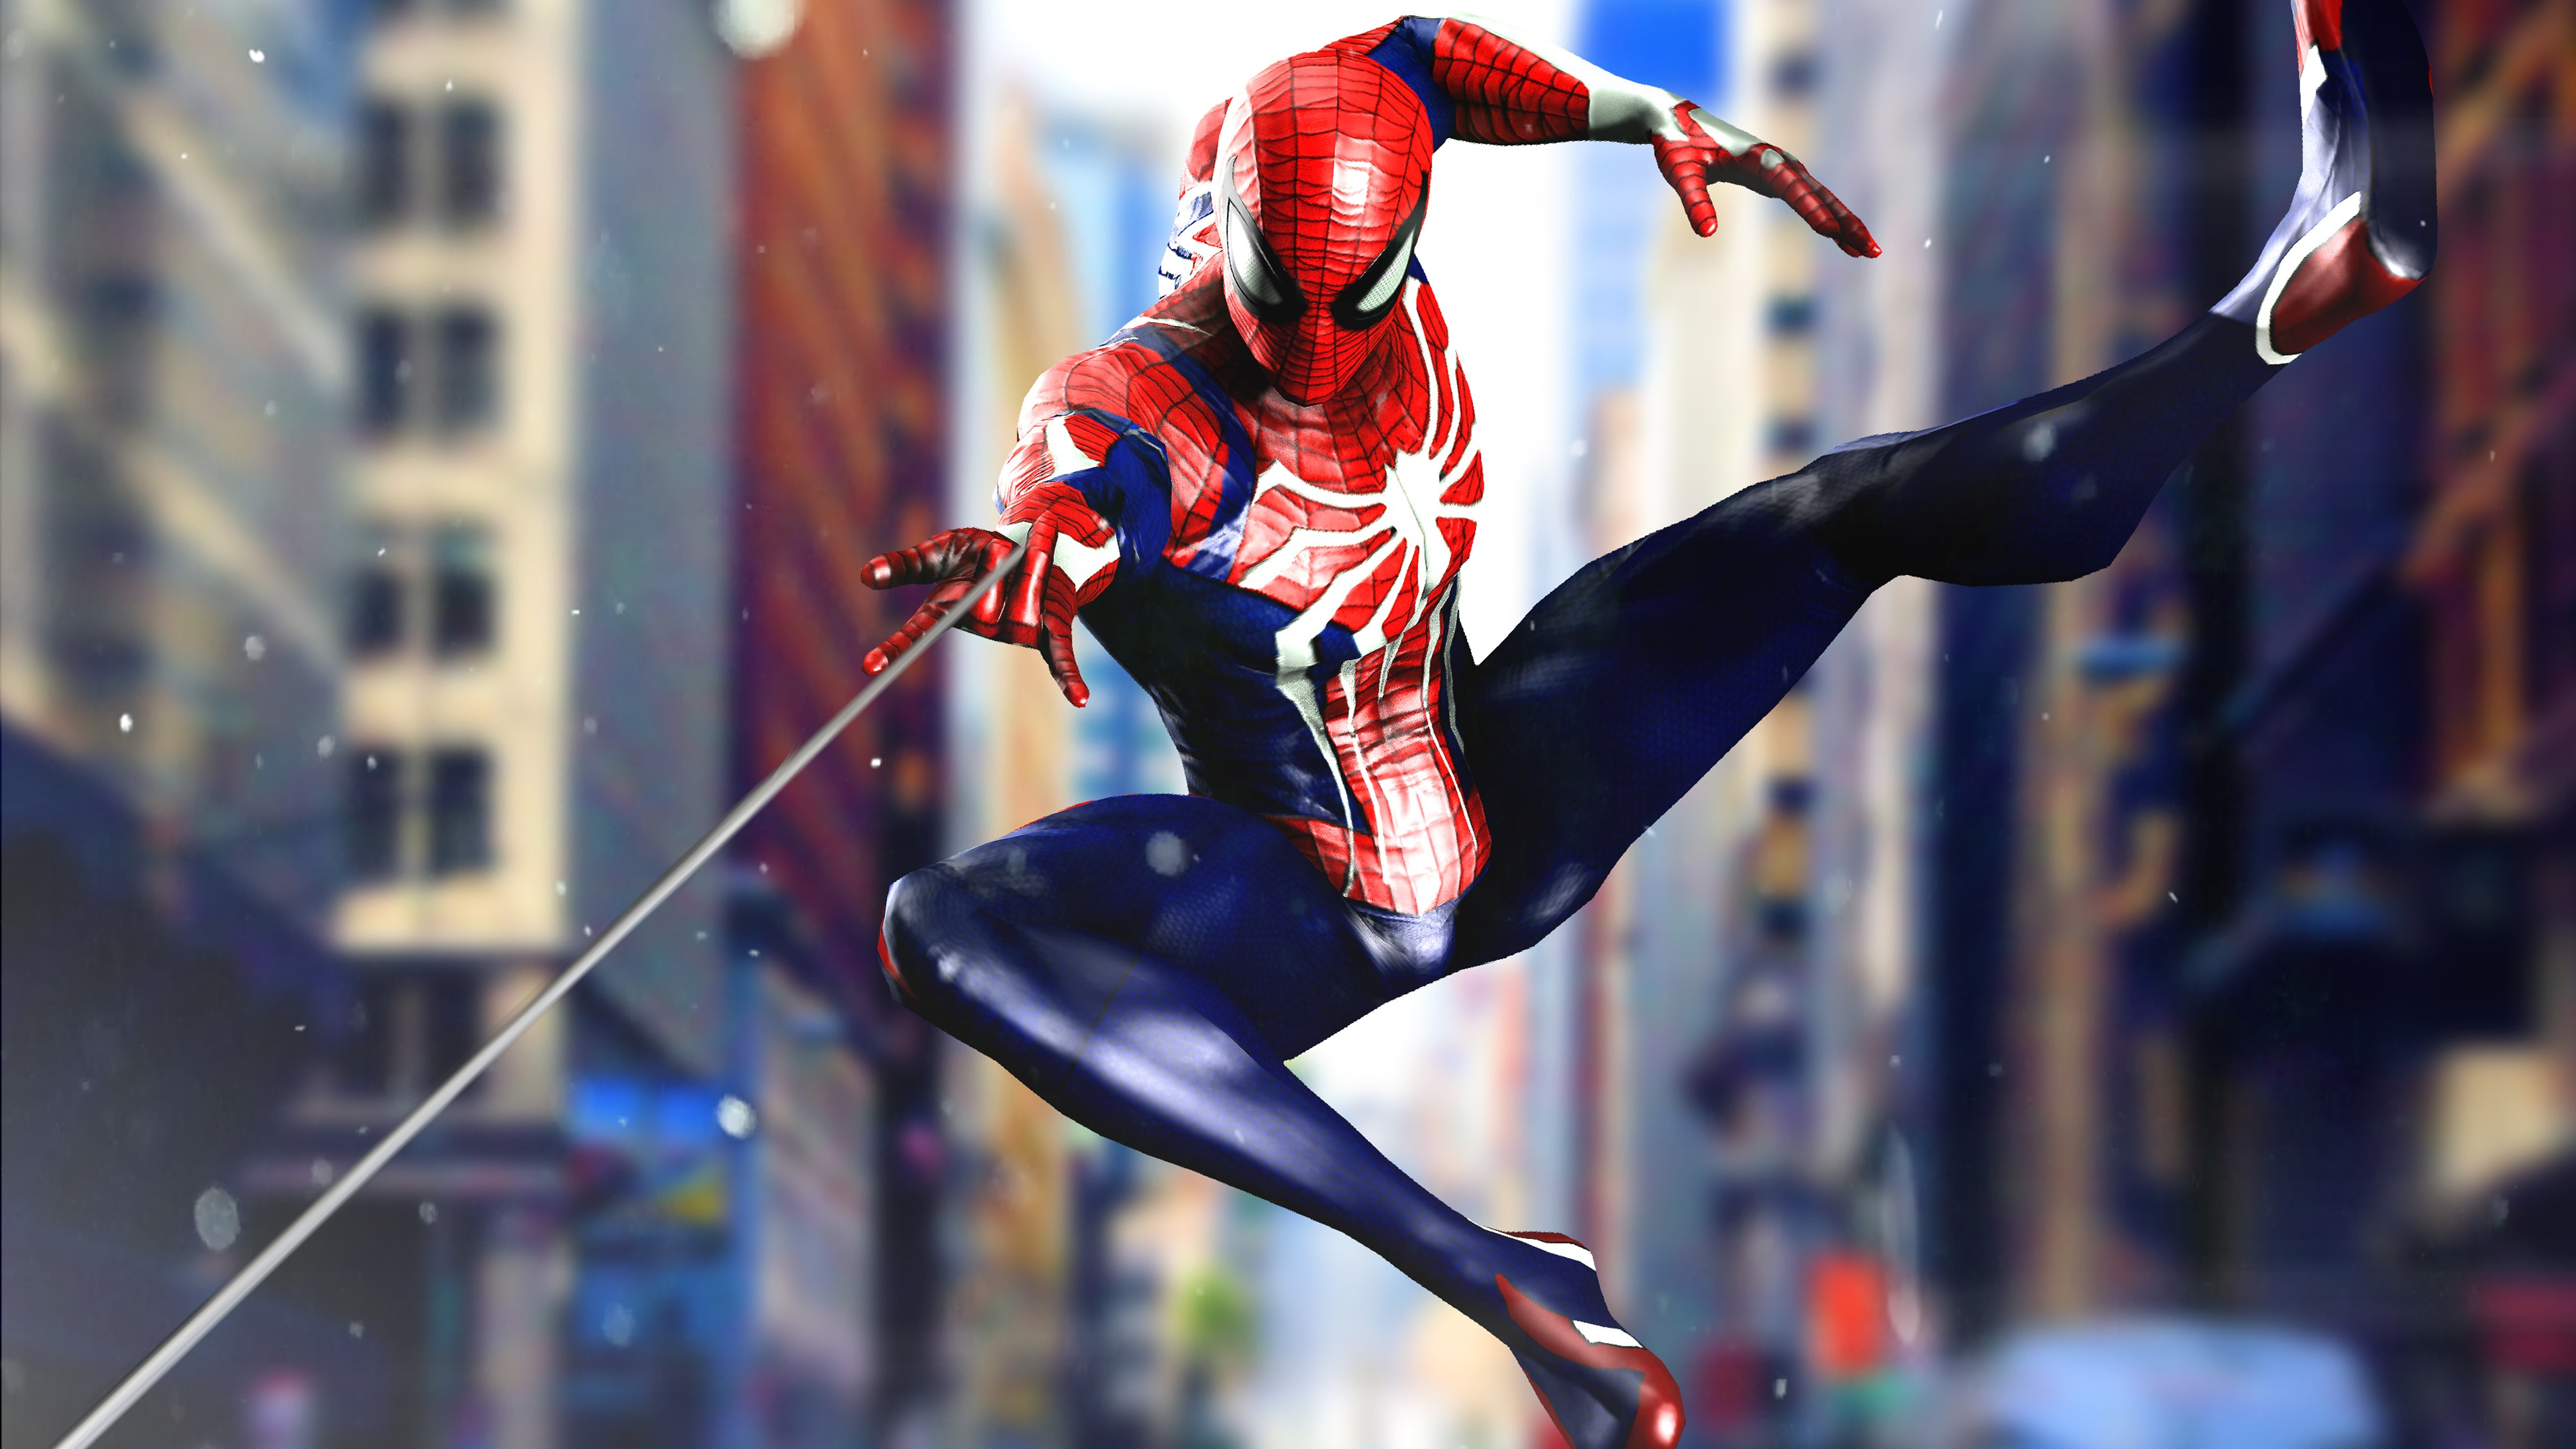 Marvel Spiderman Ps4 4k 2274162 Hd Wallpaper